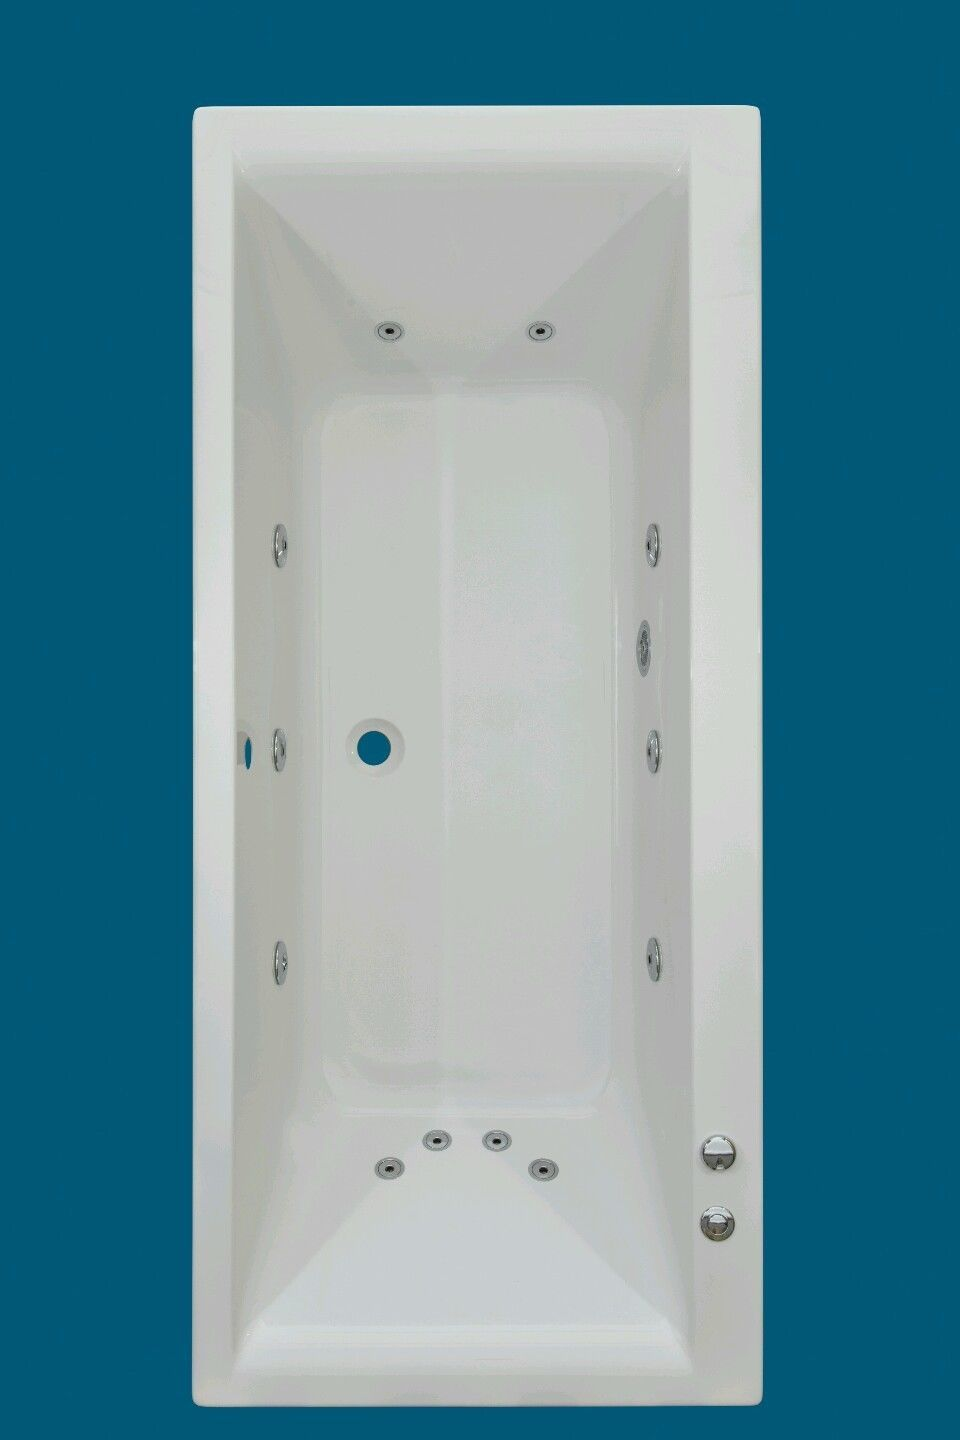 12 JET TROJAN ELITE | 1800 X 800mm DOUBLE ENDED WHIRLPOOL |SPA ...